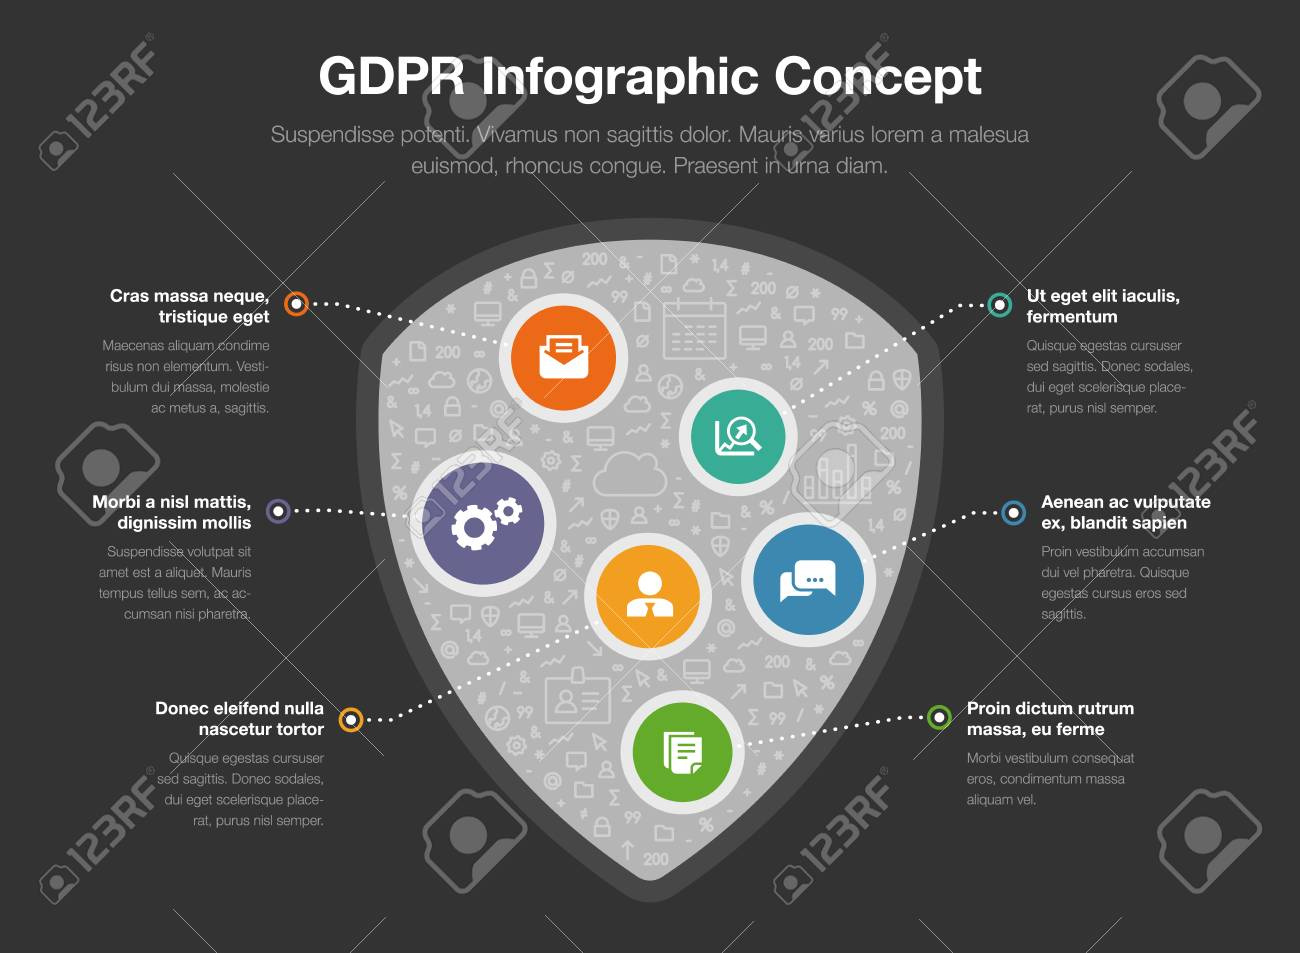 Ra T Vel European Gdpr Infographic Concept With A Shield Symbol Filled